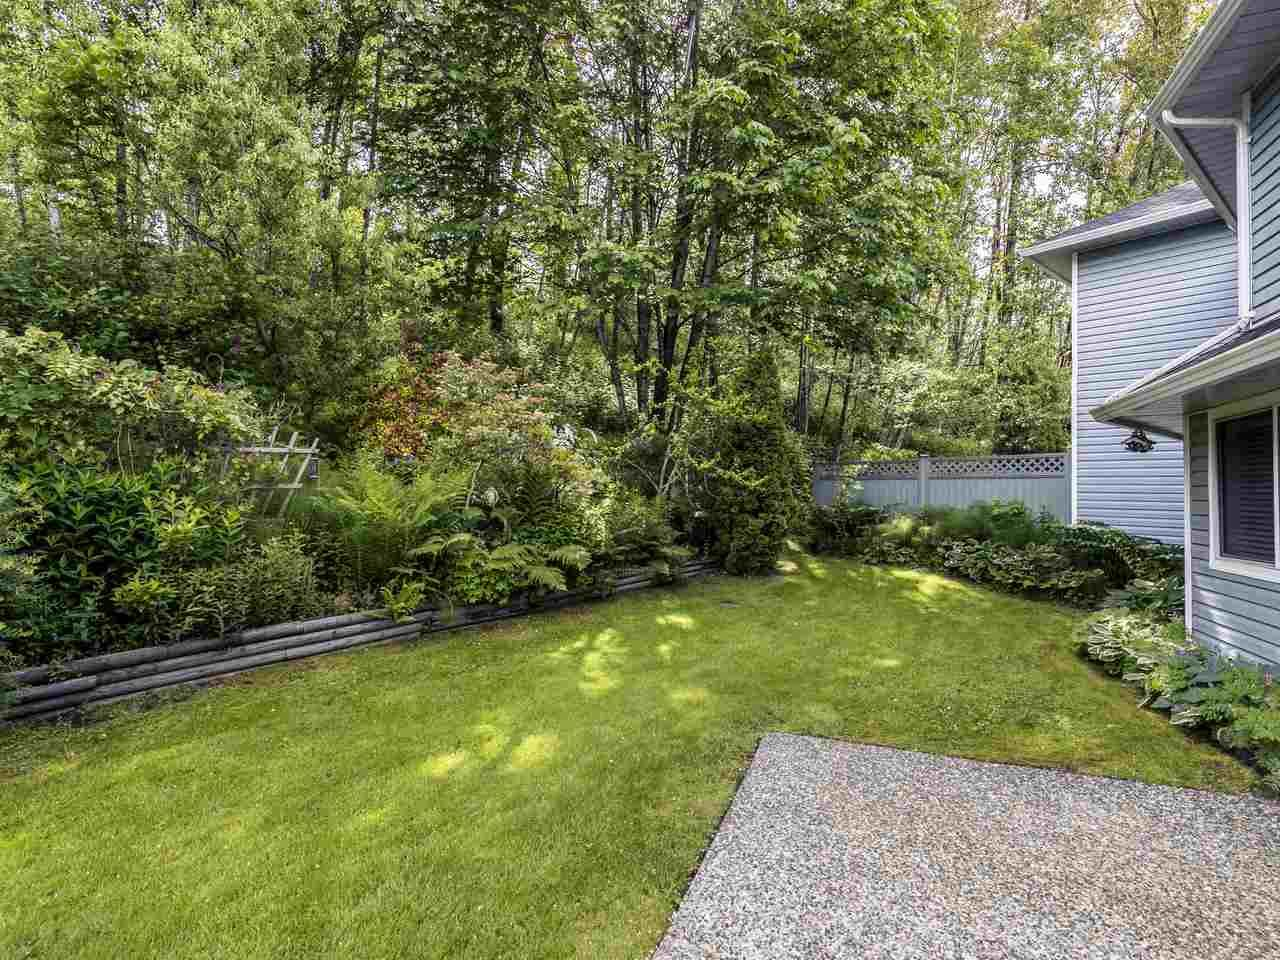 """Photo 9: Photos: 127 22555 116 Avenue in Maple Ridge: East Central Townhouse for sale in """"HILLSIDE"""" : MLS®# R2493046"""